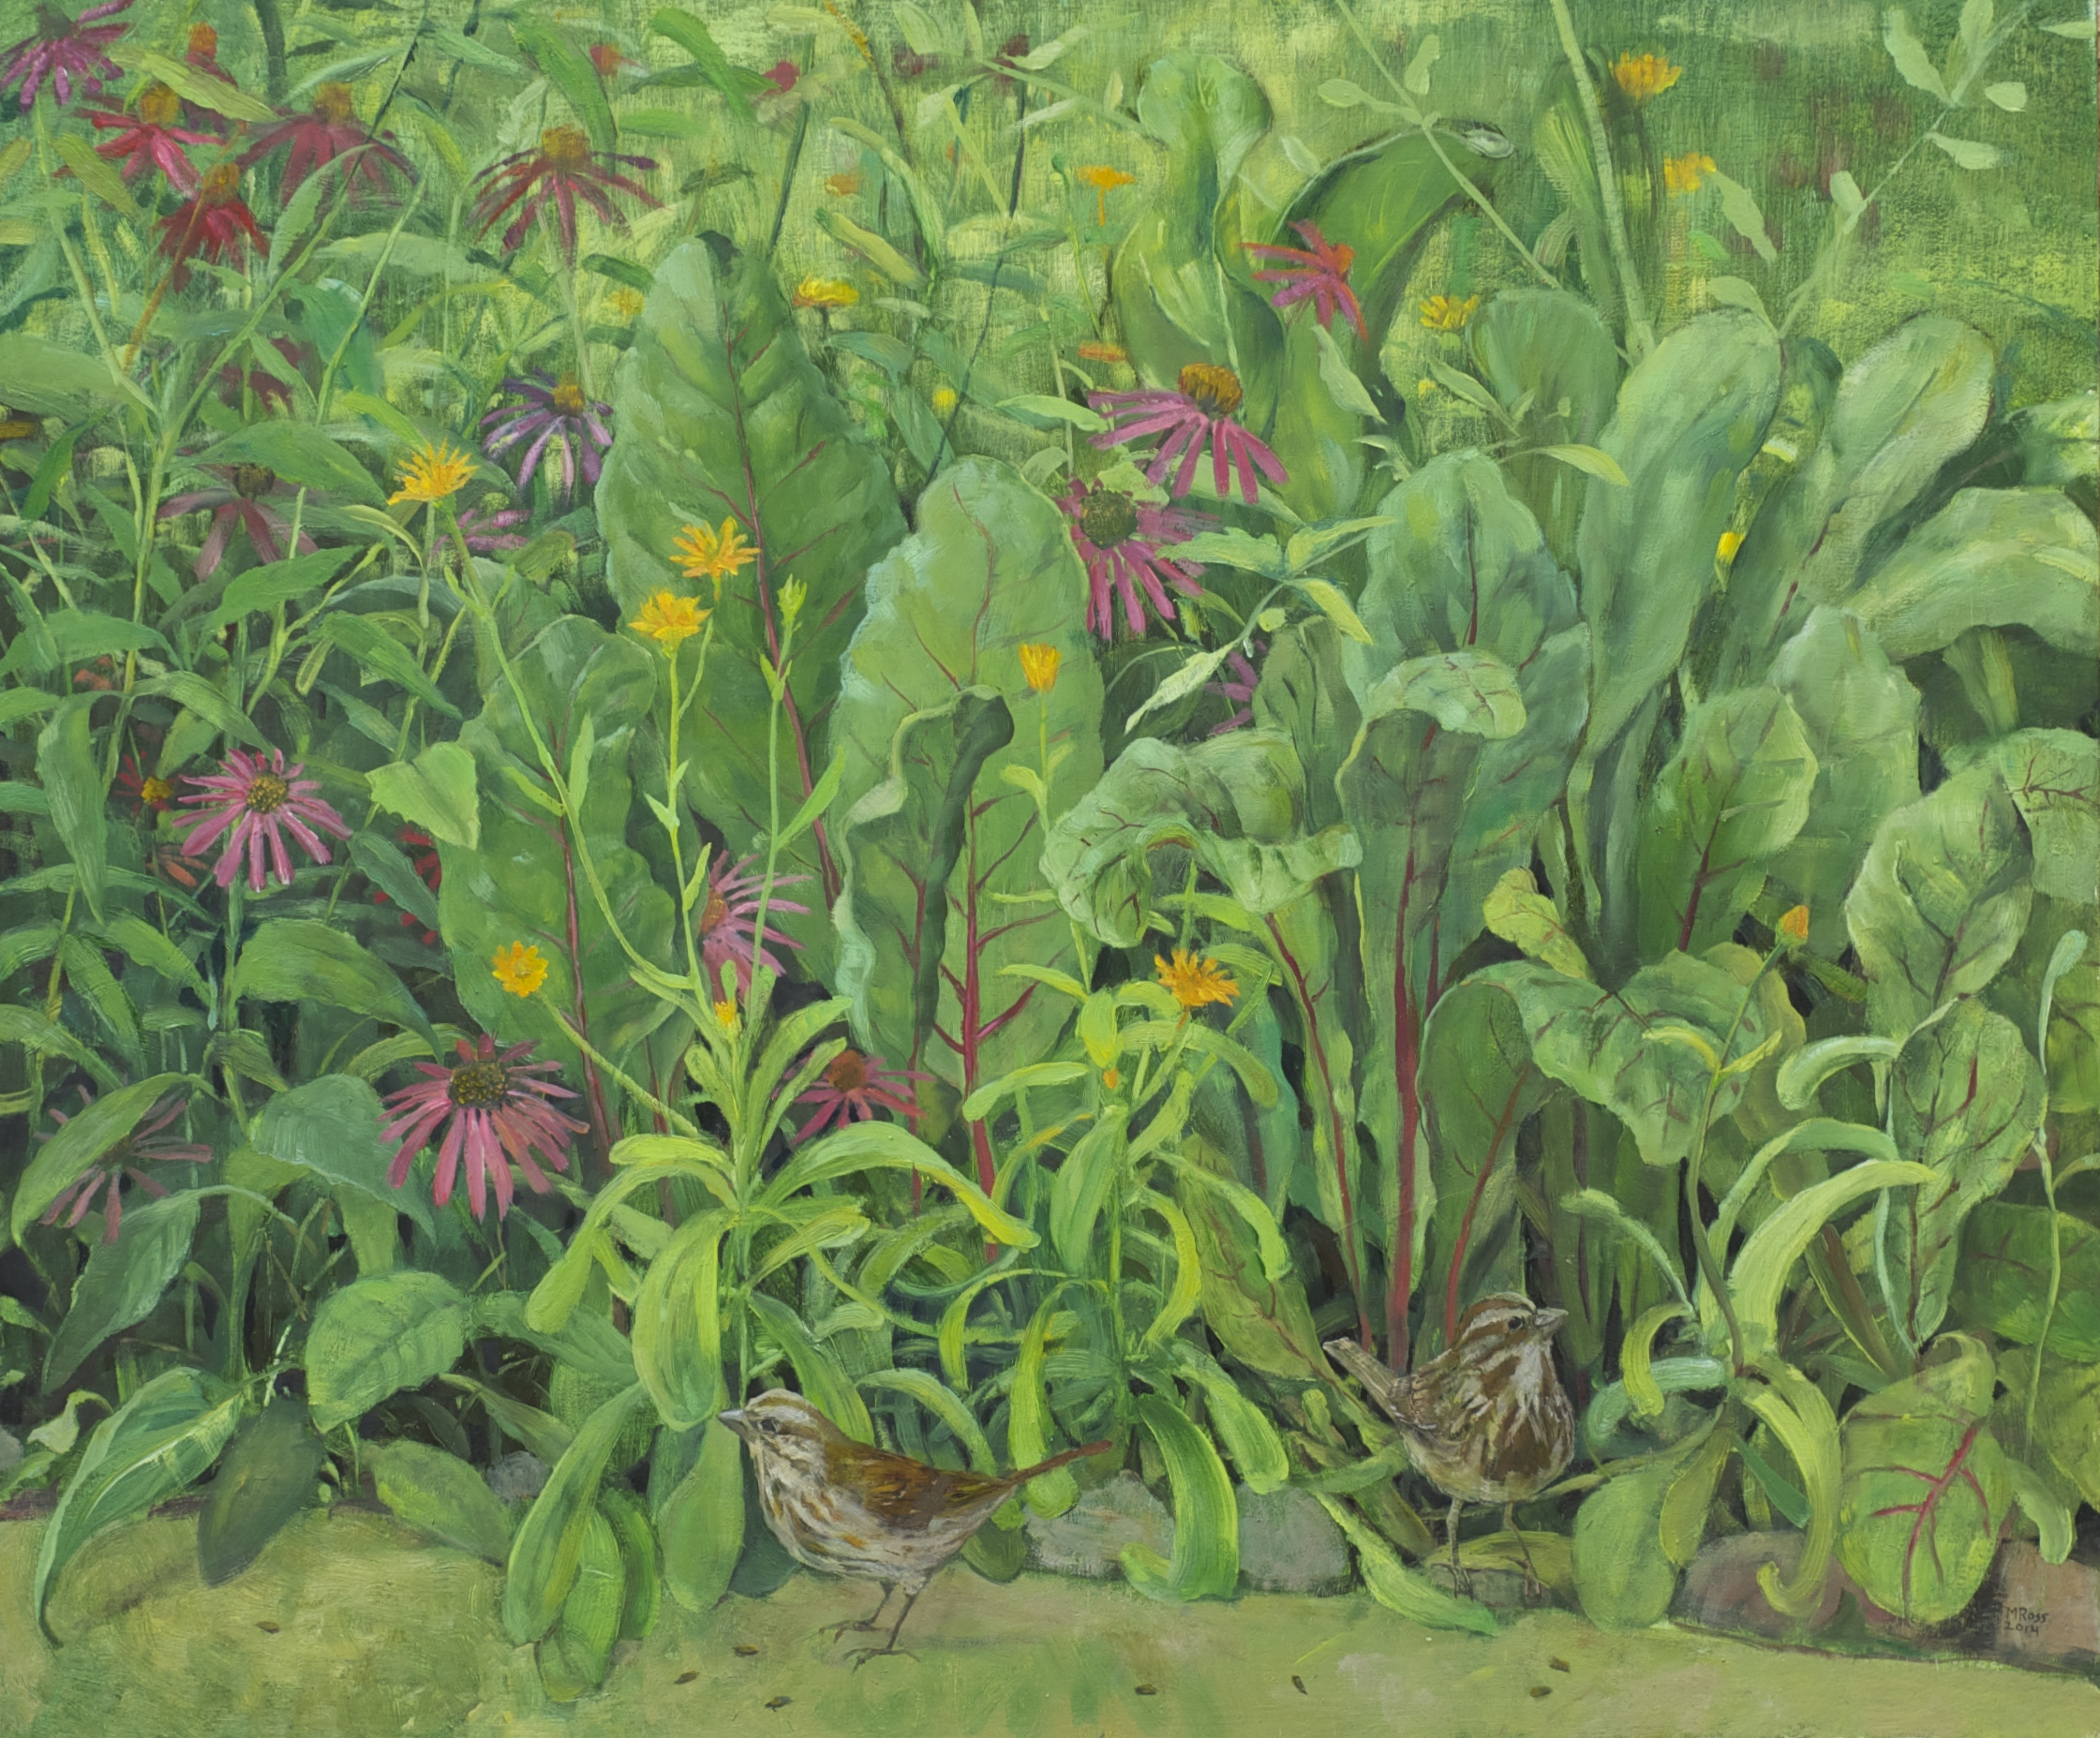 Landscape with Chard and Echinacea